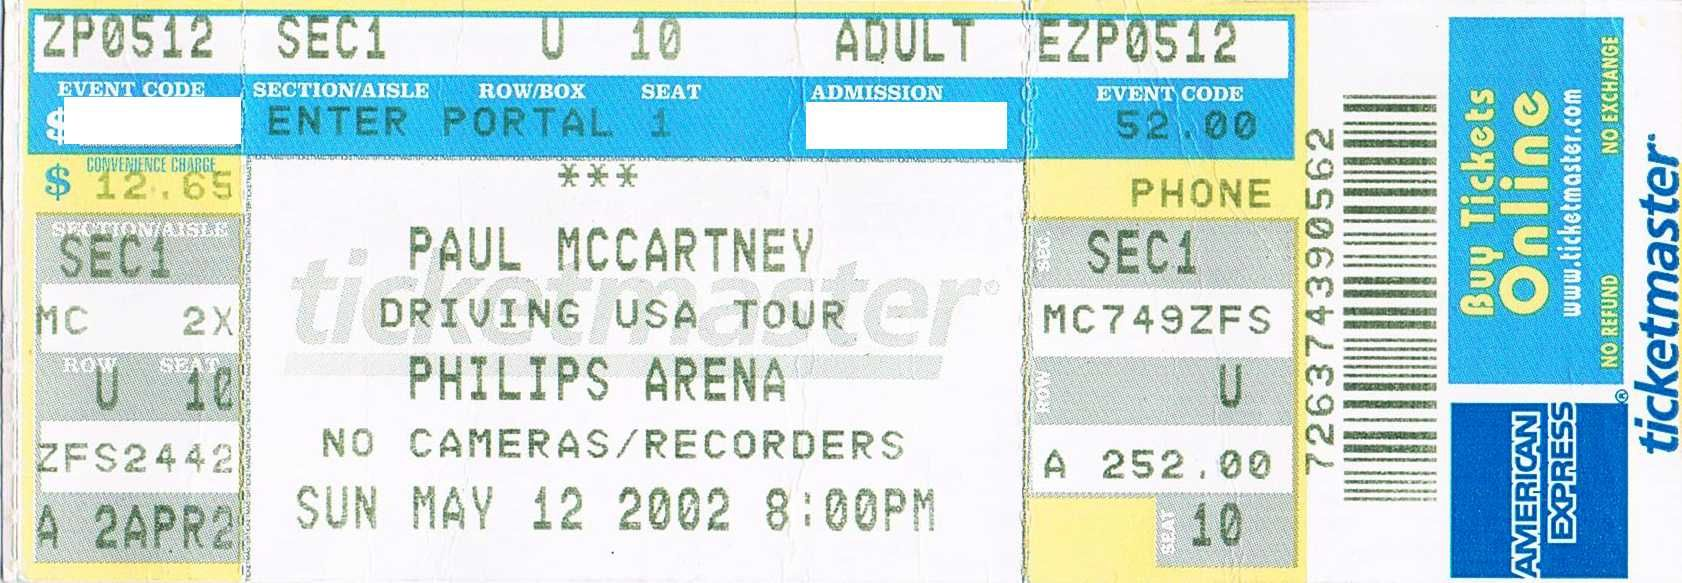 Paul mccartney philips arena atlanta may 2002 his - Paul mccartney madison square garden tickets ...